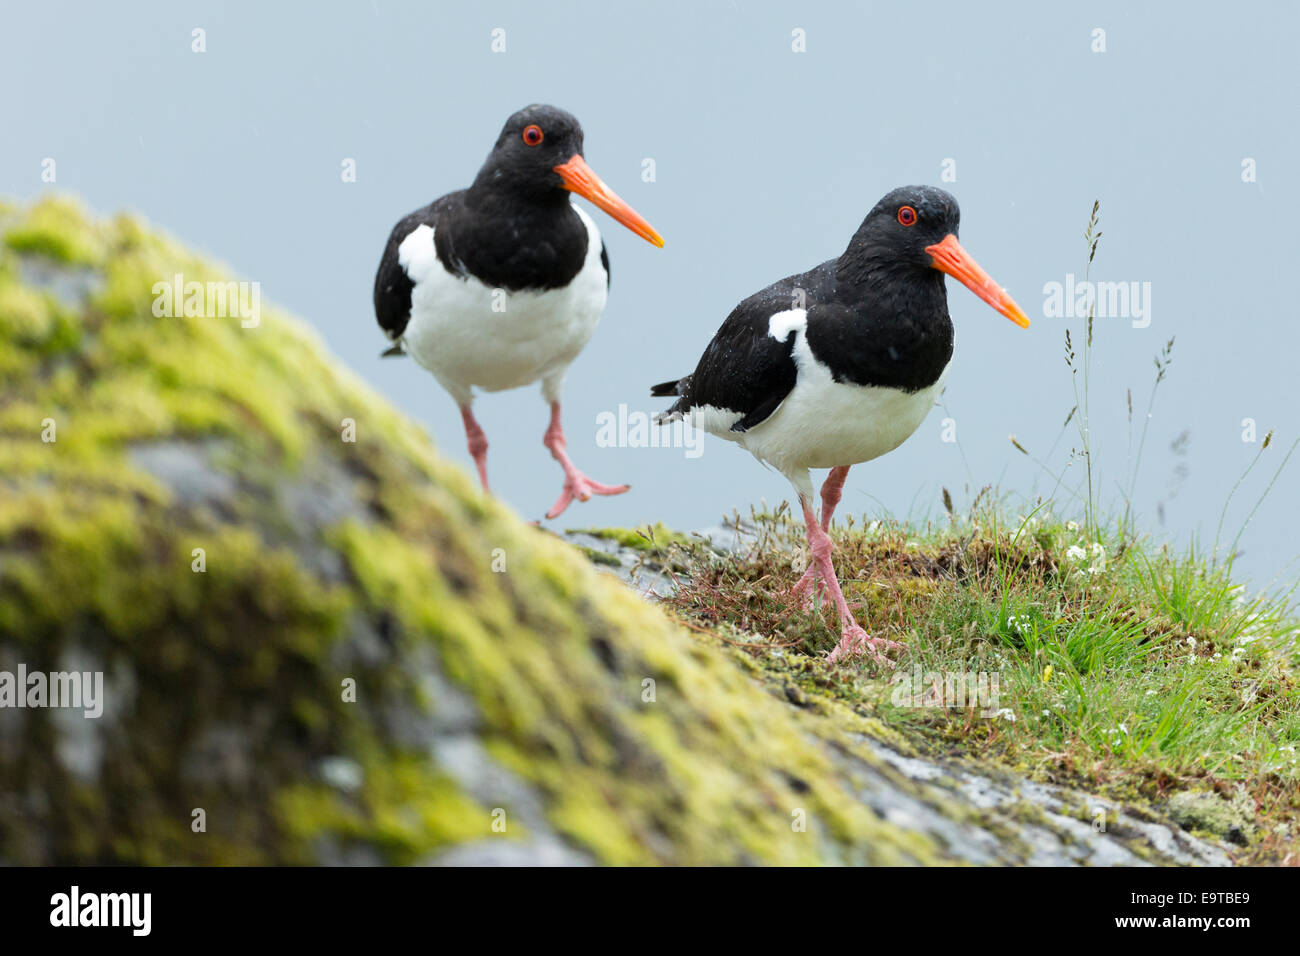 Pair of Oystercatchers, Haematopus ostralegus, black and white Oystercatcher wading birds with long orange beaks - Stock Image